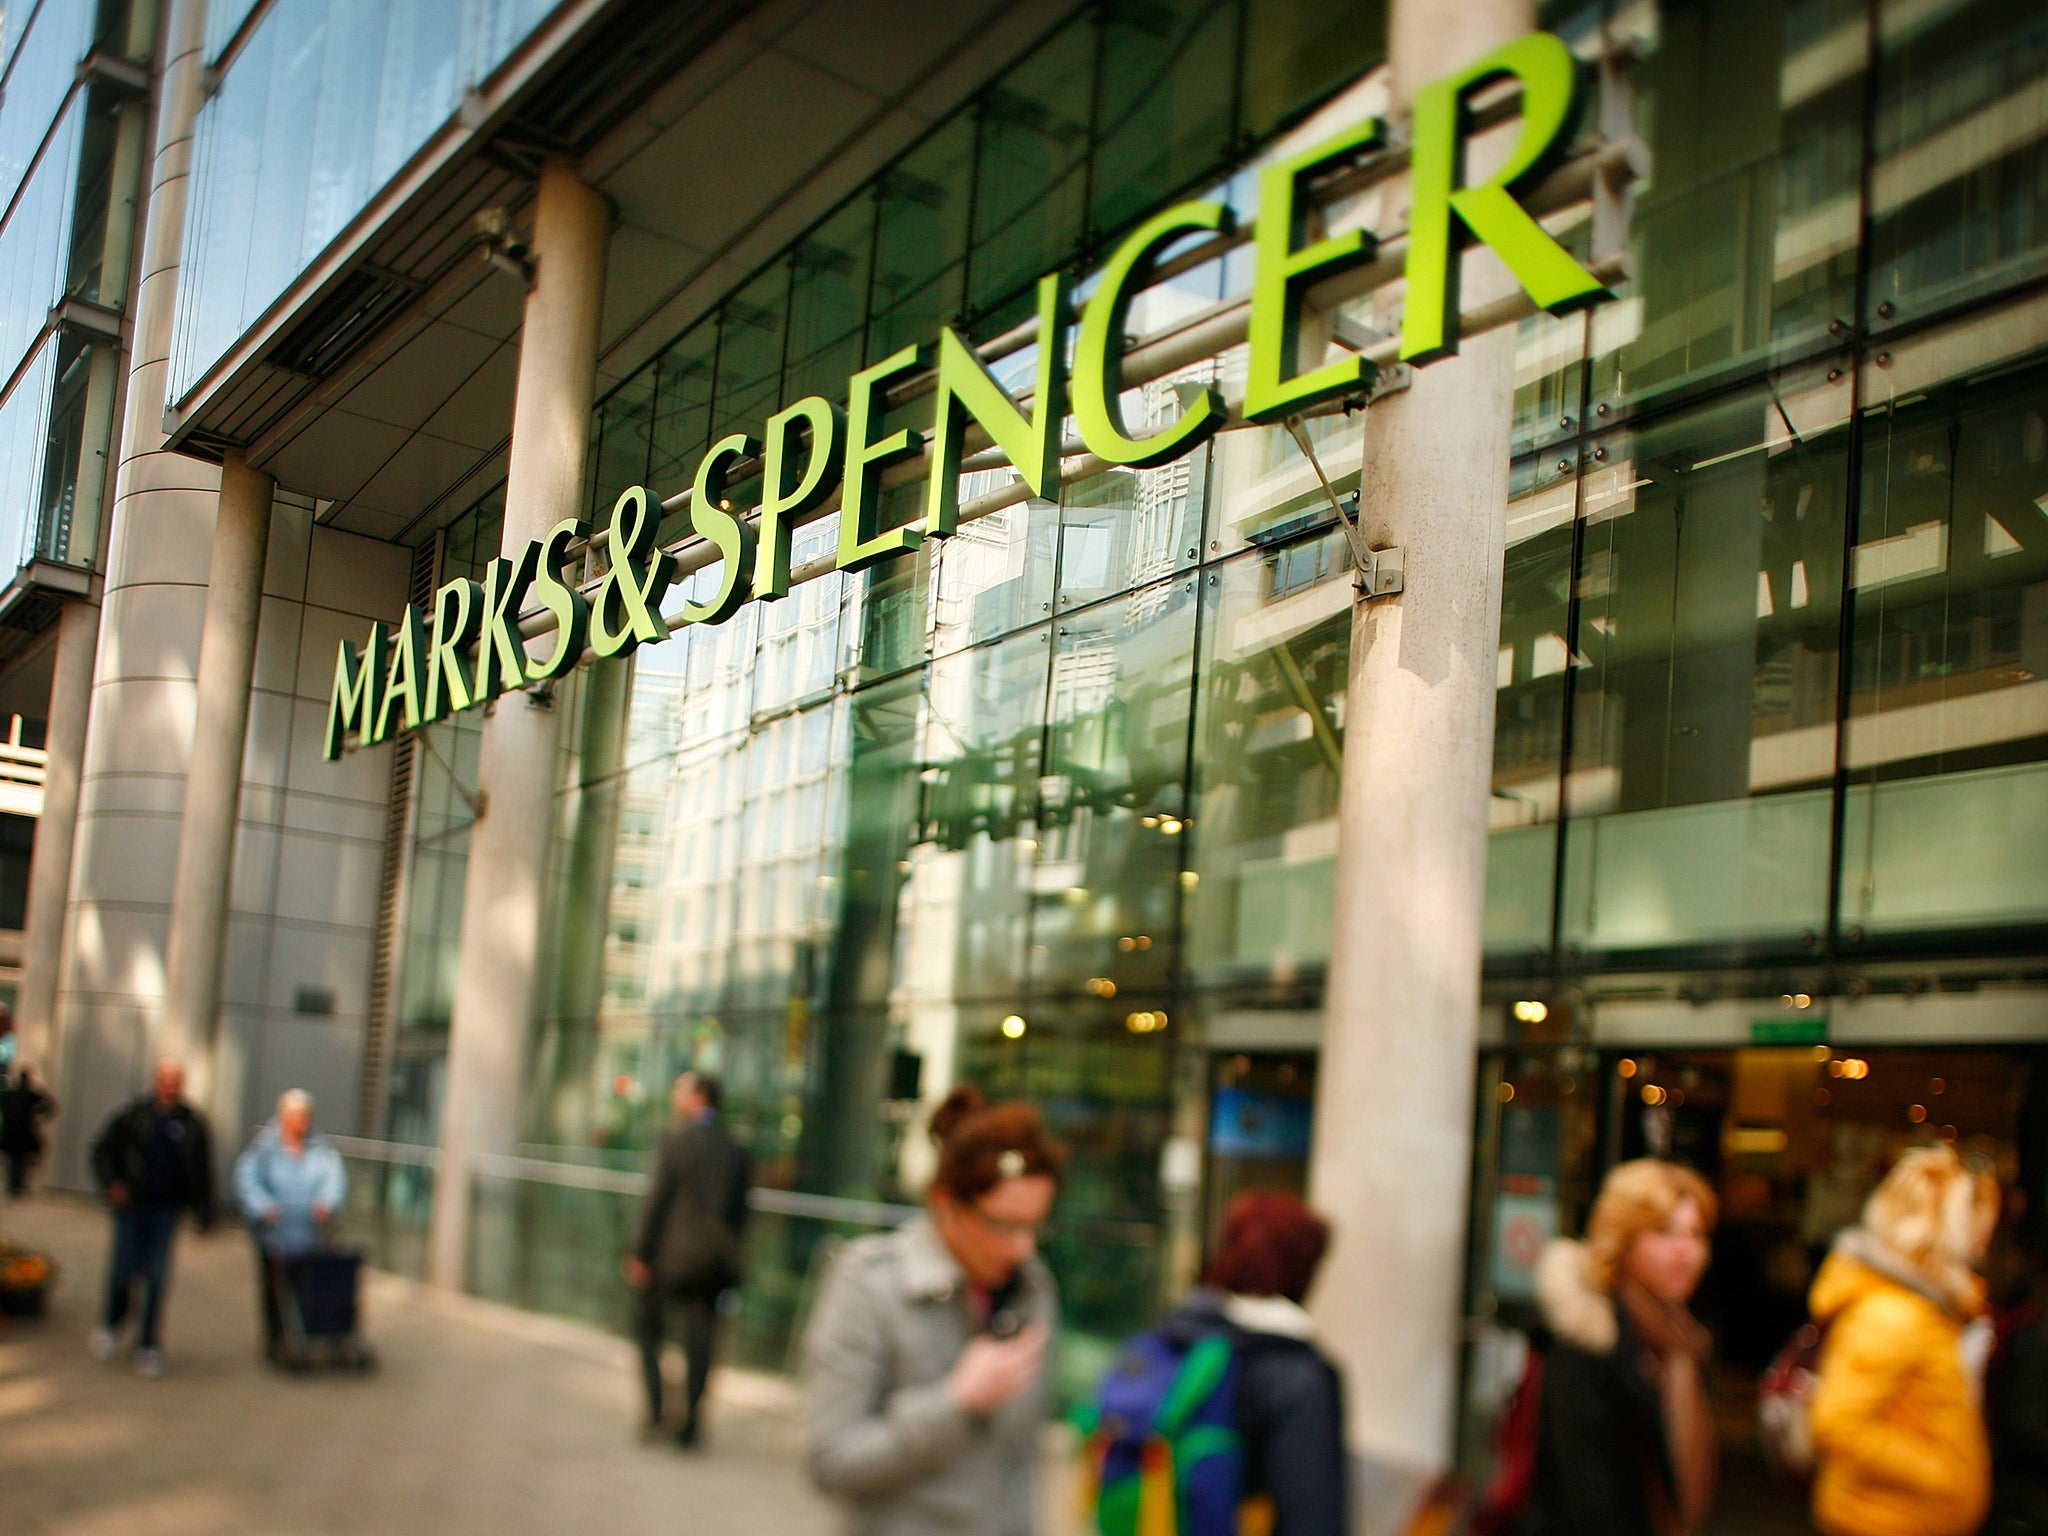 How many marks and spencers stores?